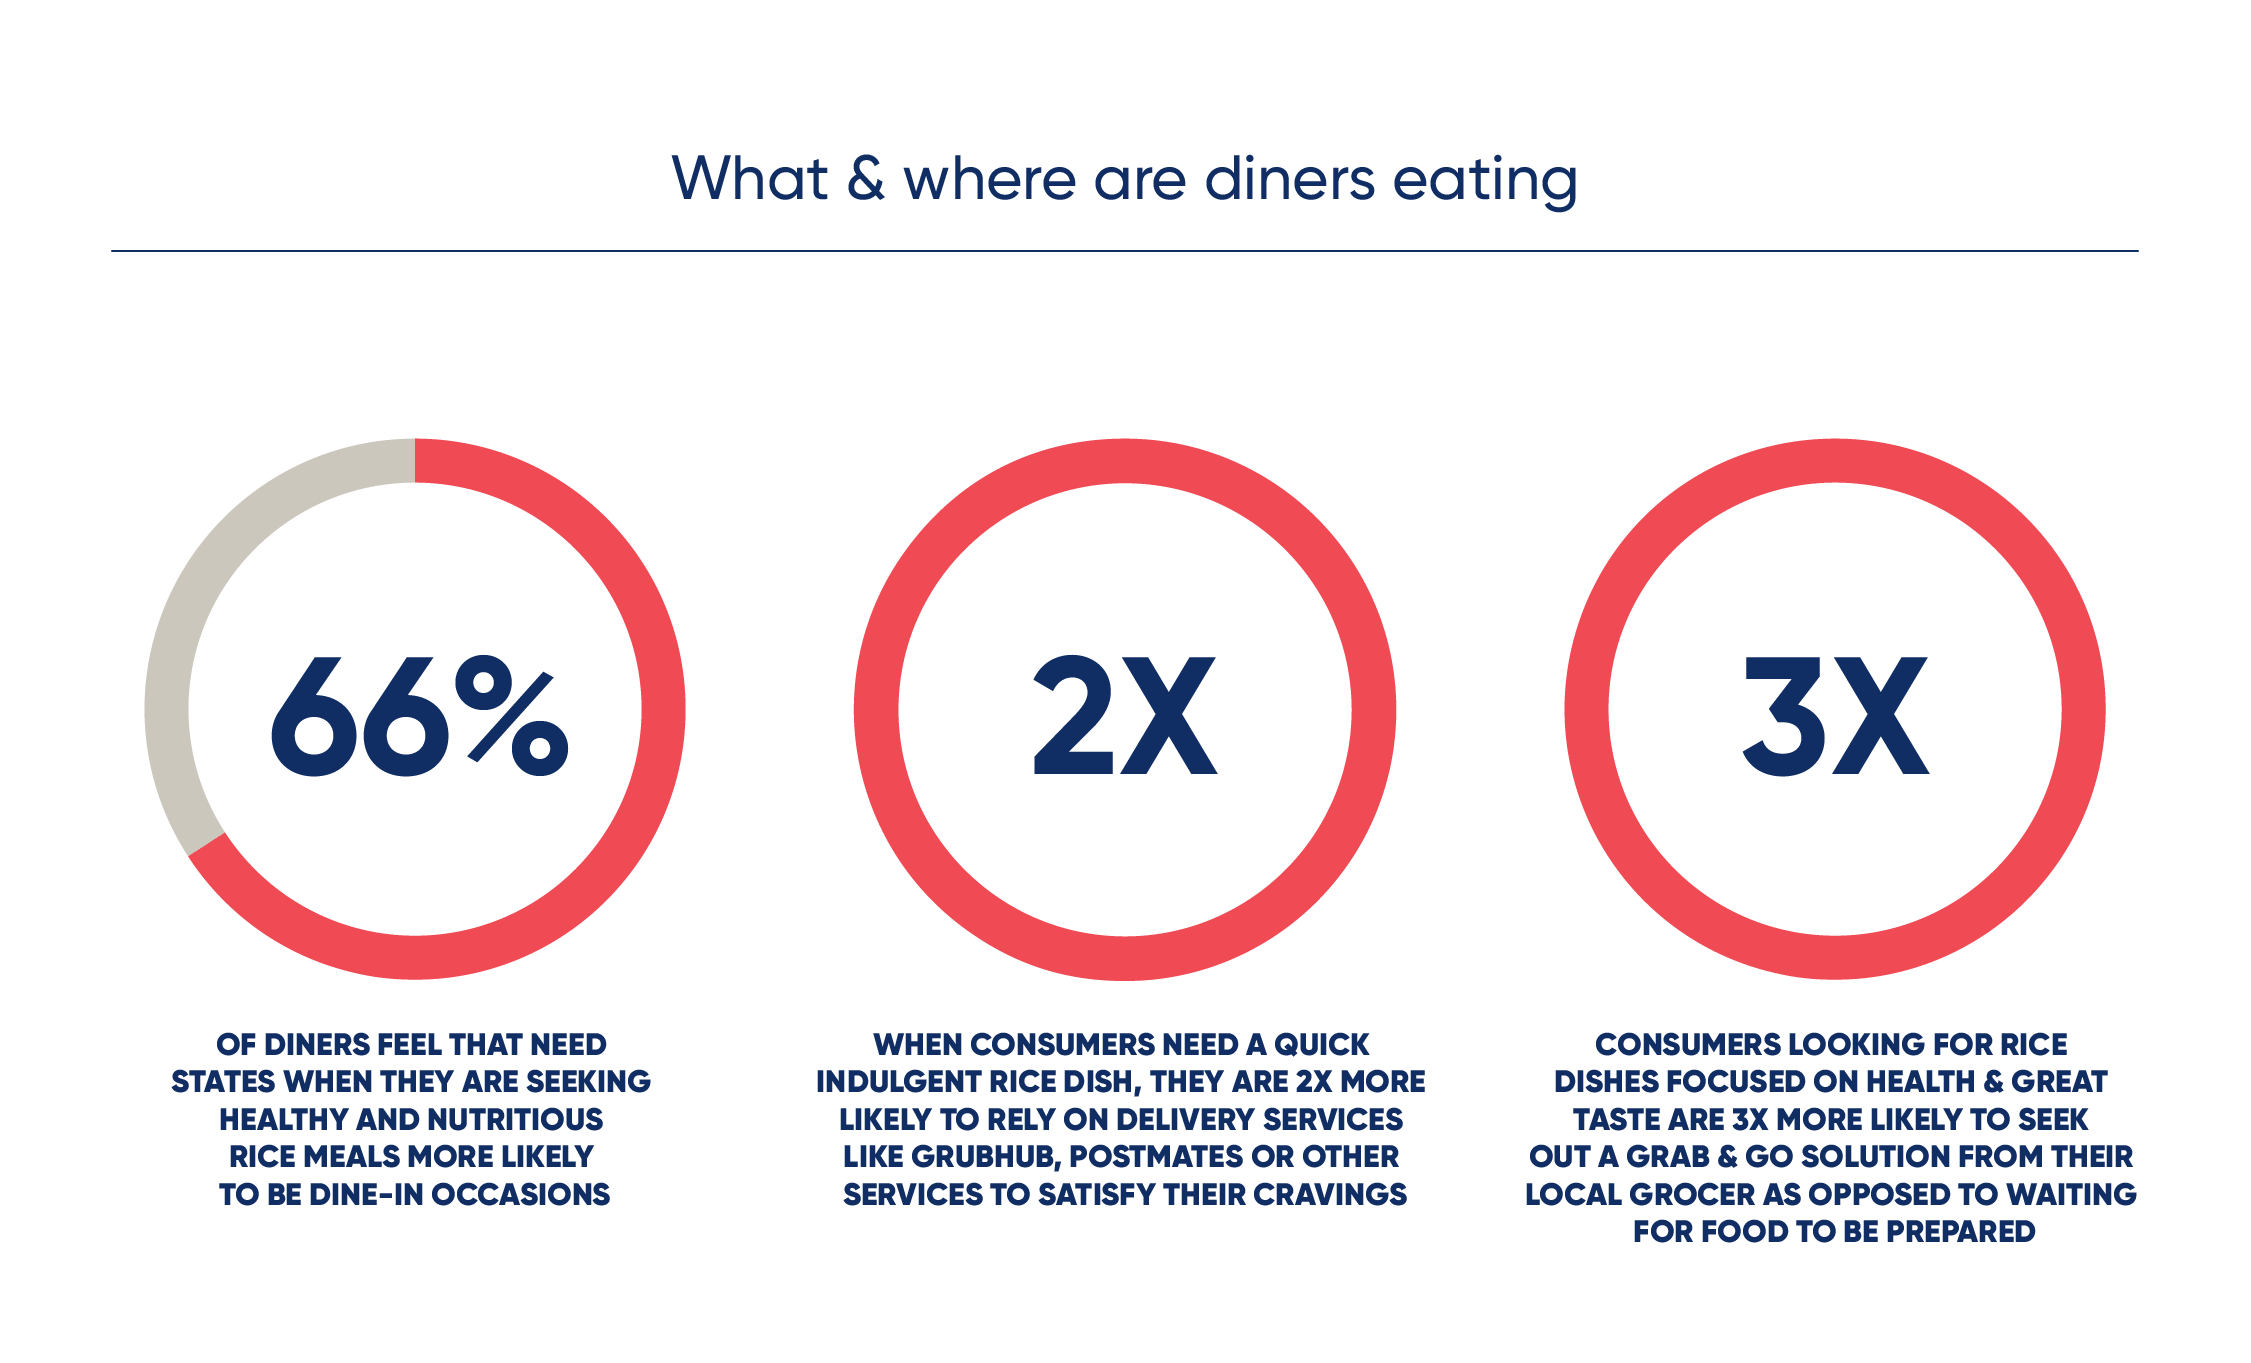 66% of diners feel that need states when they are seeking healthy rice meals are more likely to be dine in occasions. when consumers need a quick indulgent rice dish they are atwo times more likely to rely on delivery services. consumers looking for rice dishes focused on health and great taste are 3 times moer likely to seek a grab and go solution from their local grocer as opposed to waiting for food to be prepared